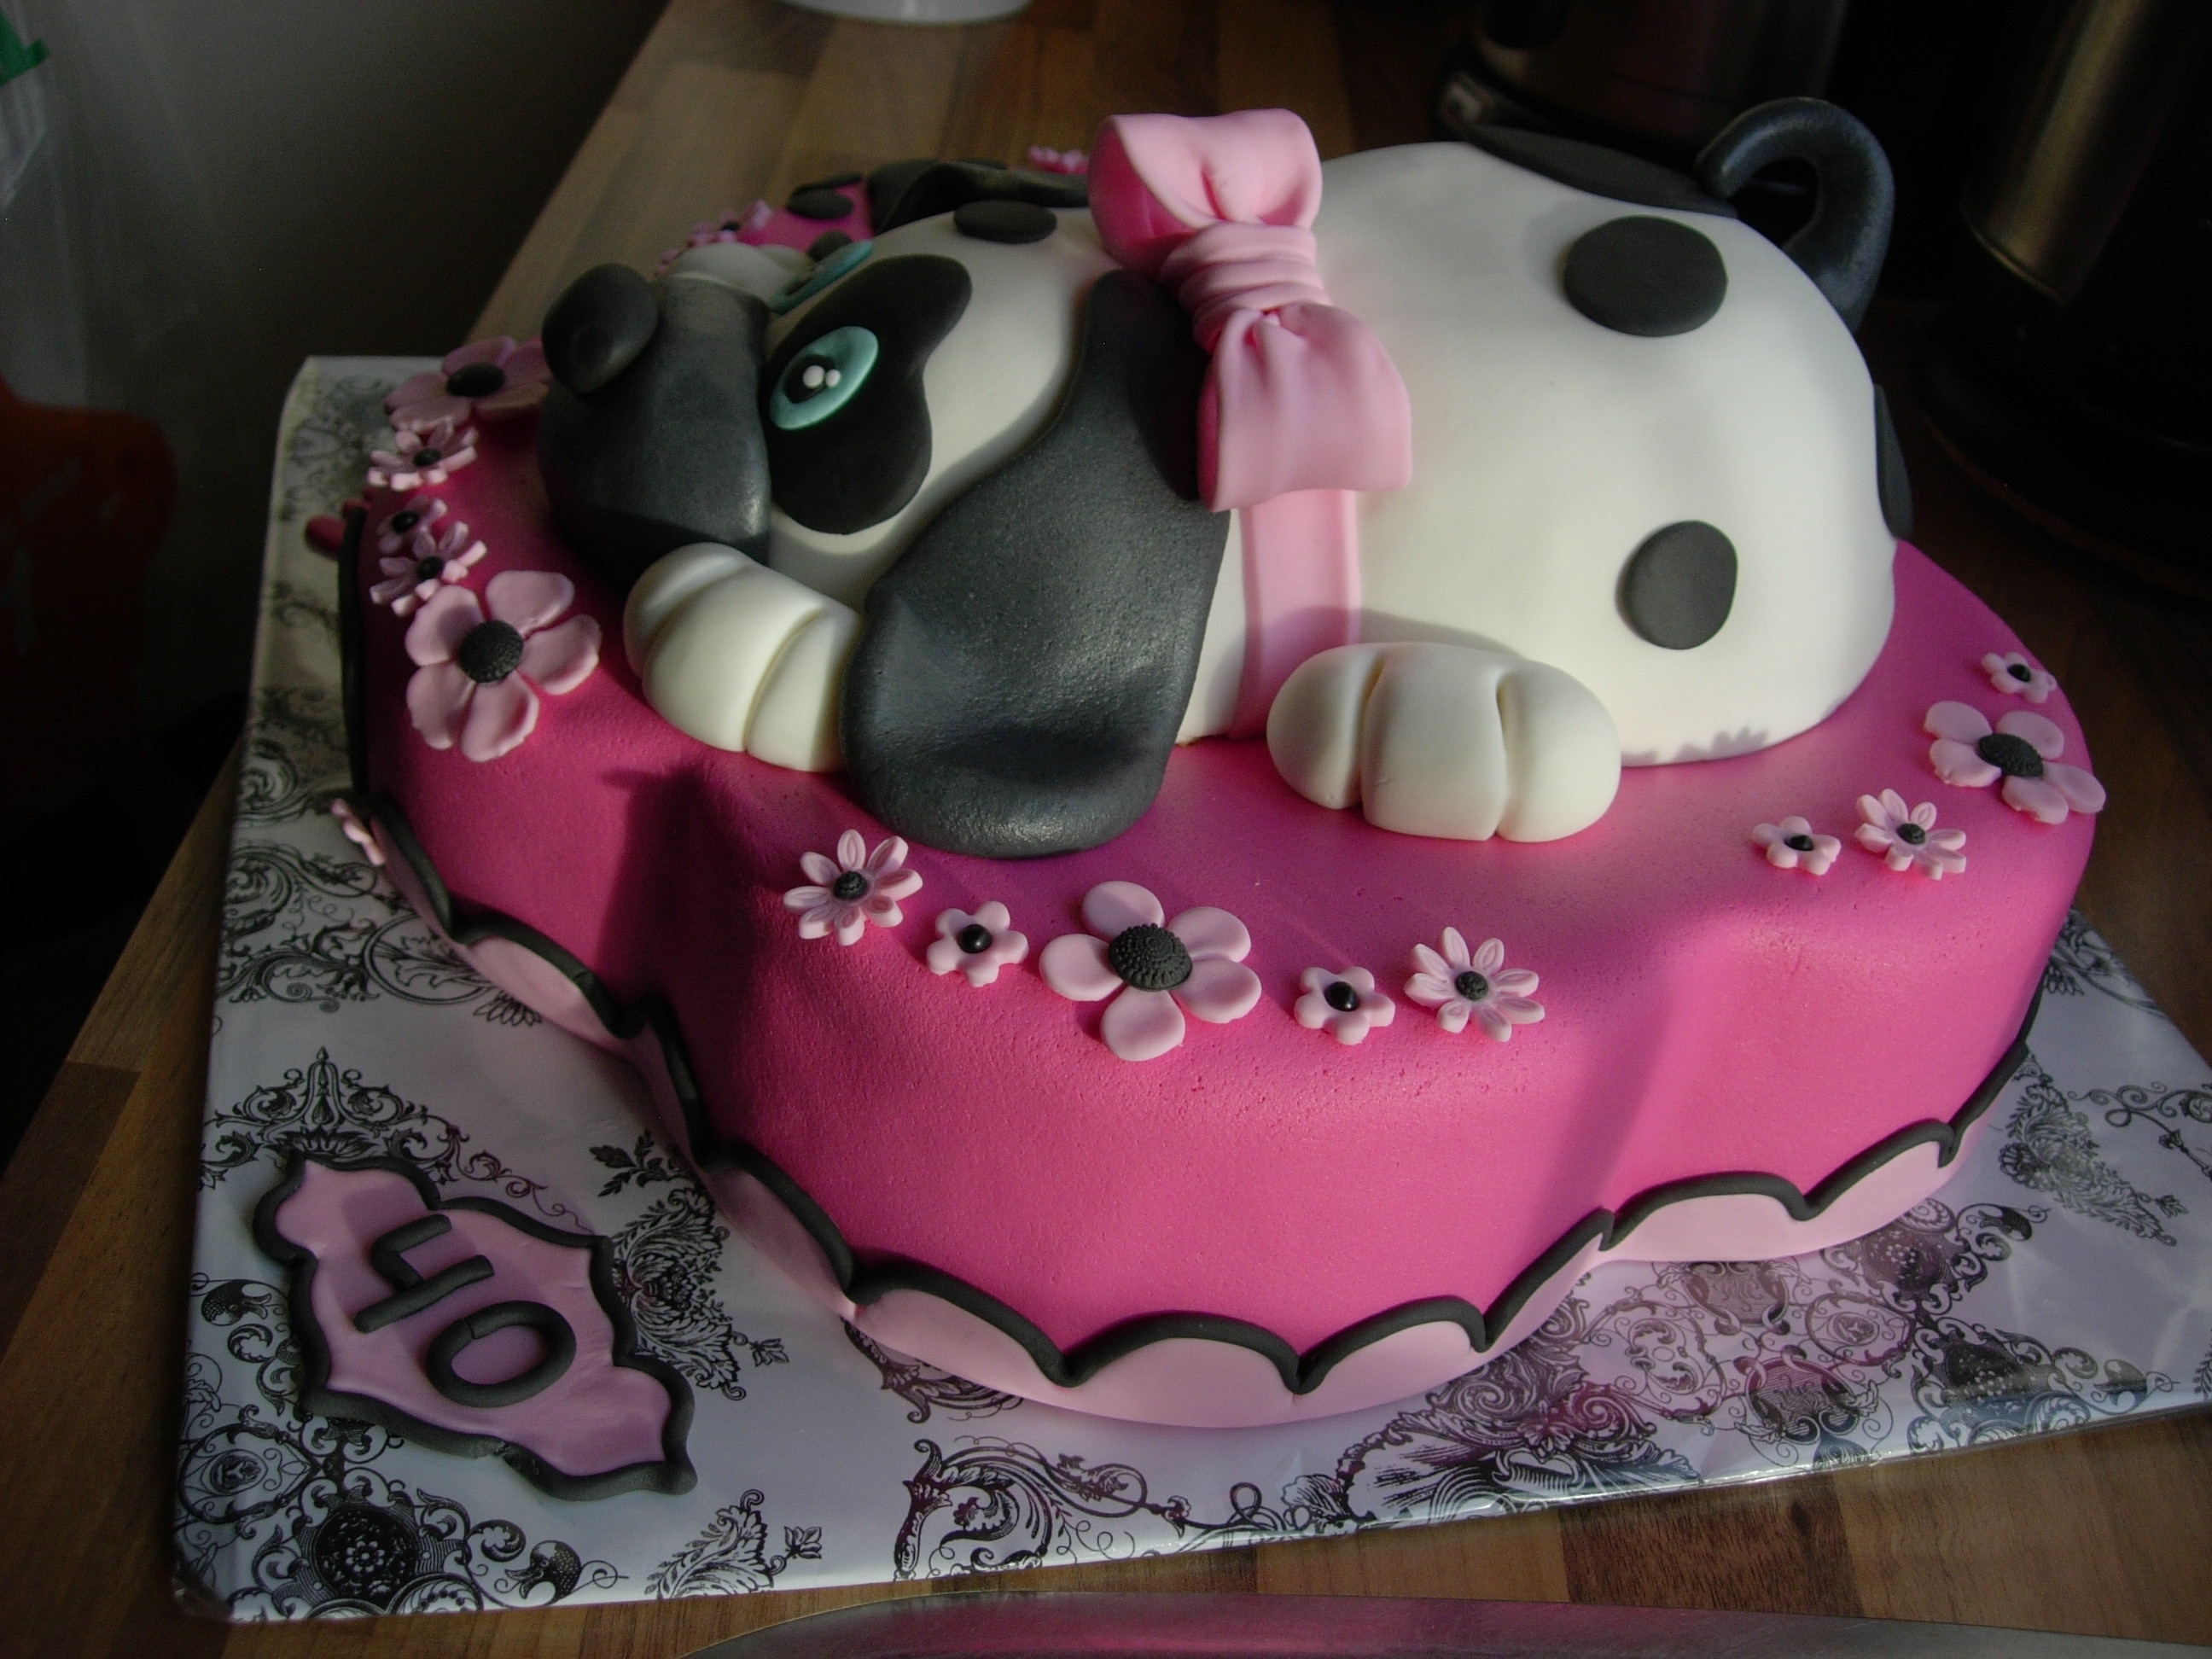 Flower Amp Dog Birthday Cake For My Daughter 7 And Husband